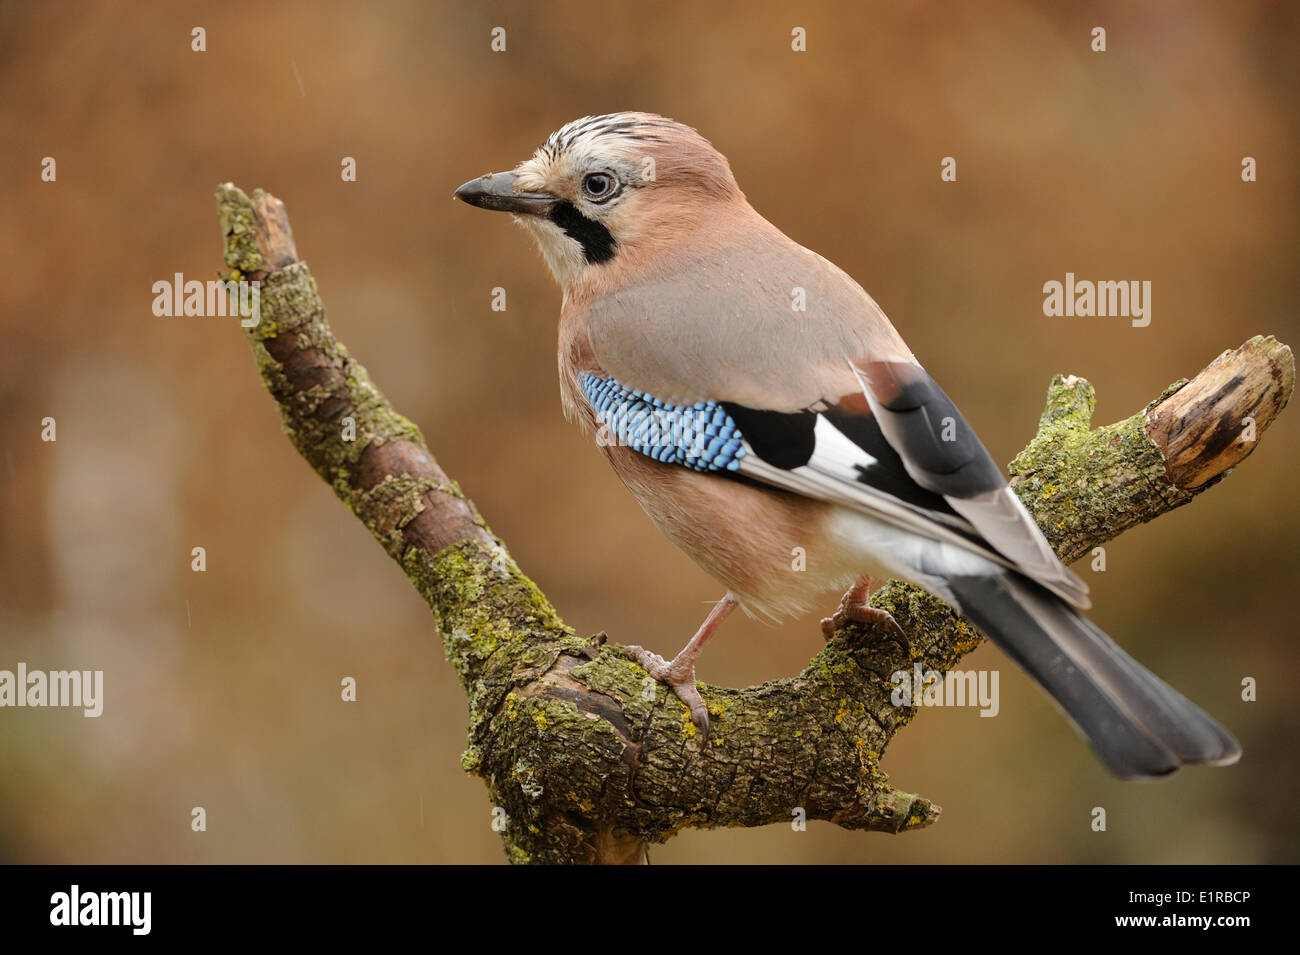 Jay perched on a branch - Stock Image